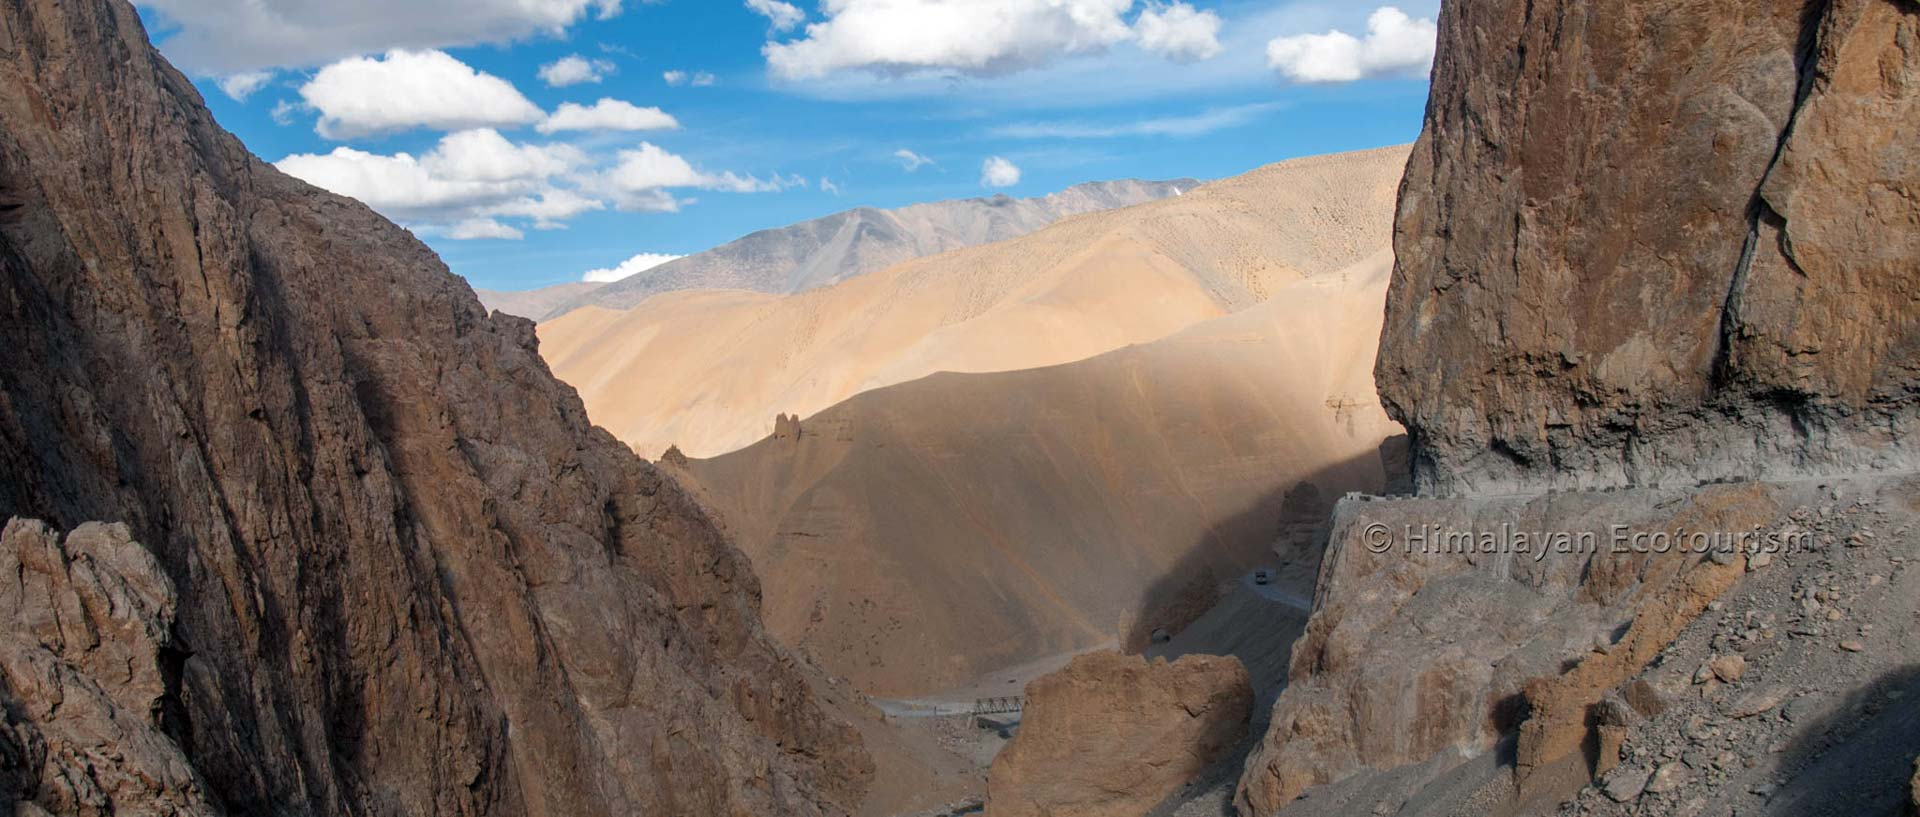 The Nubra valley on day 9